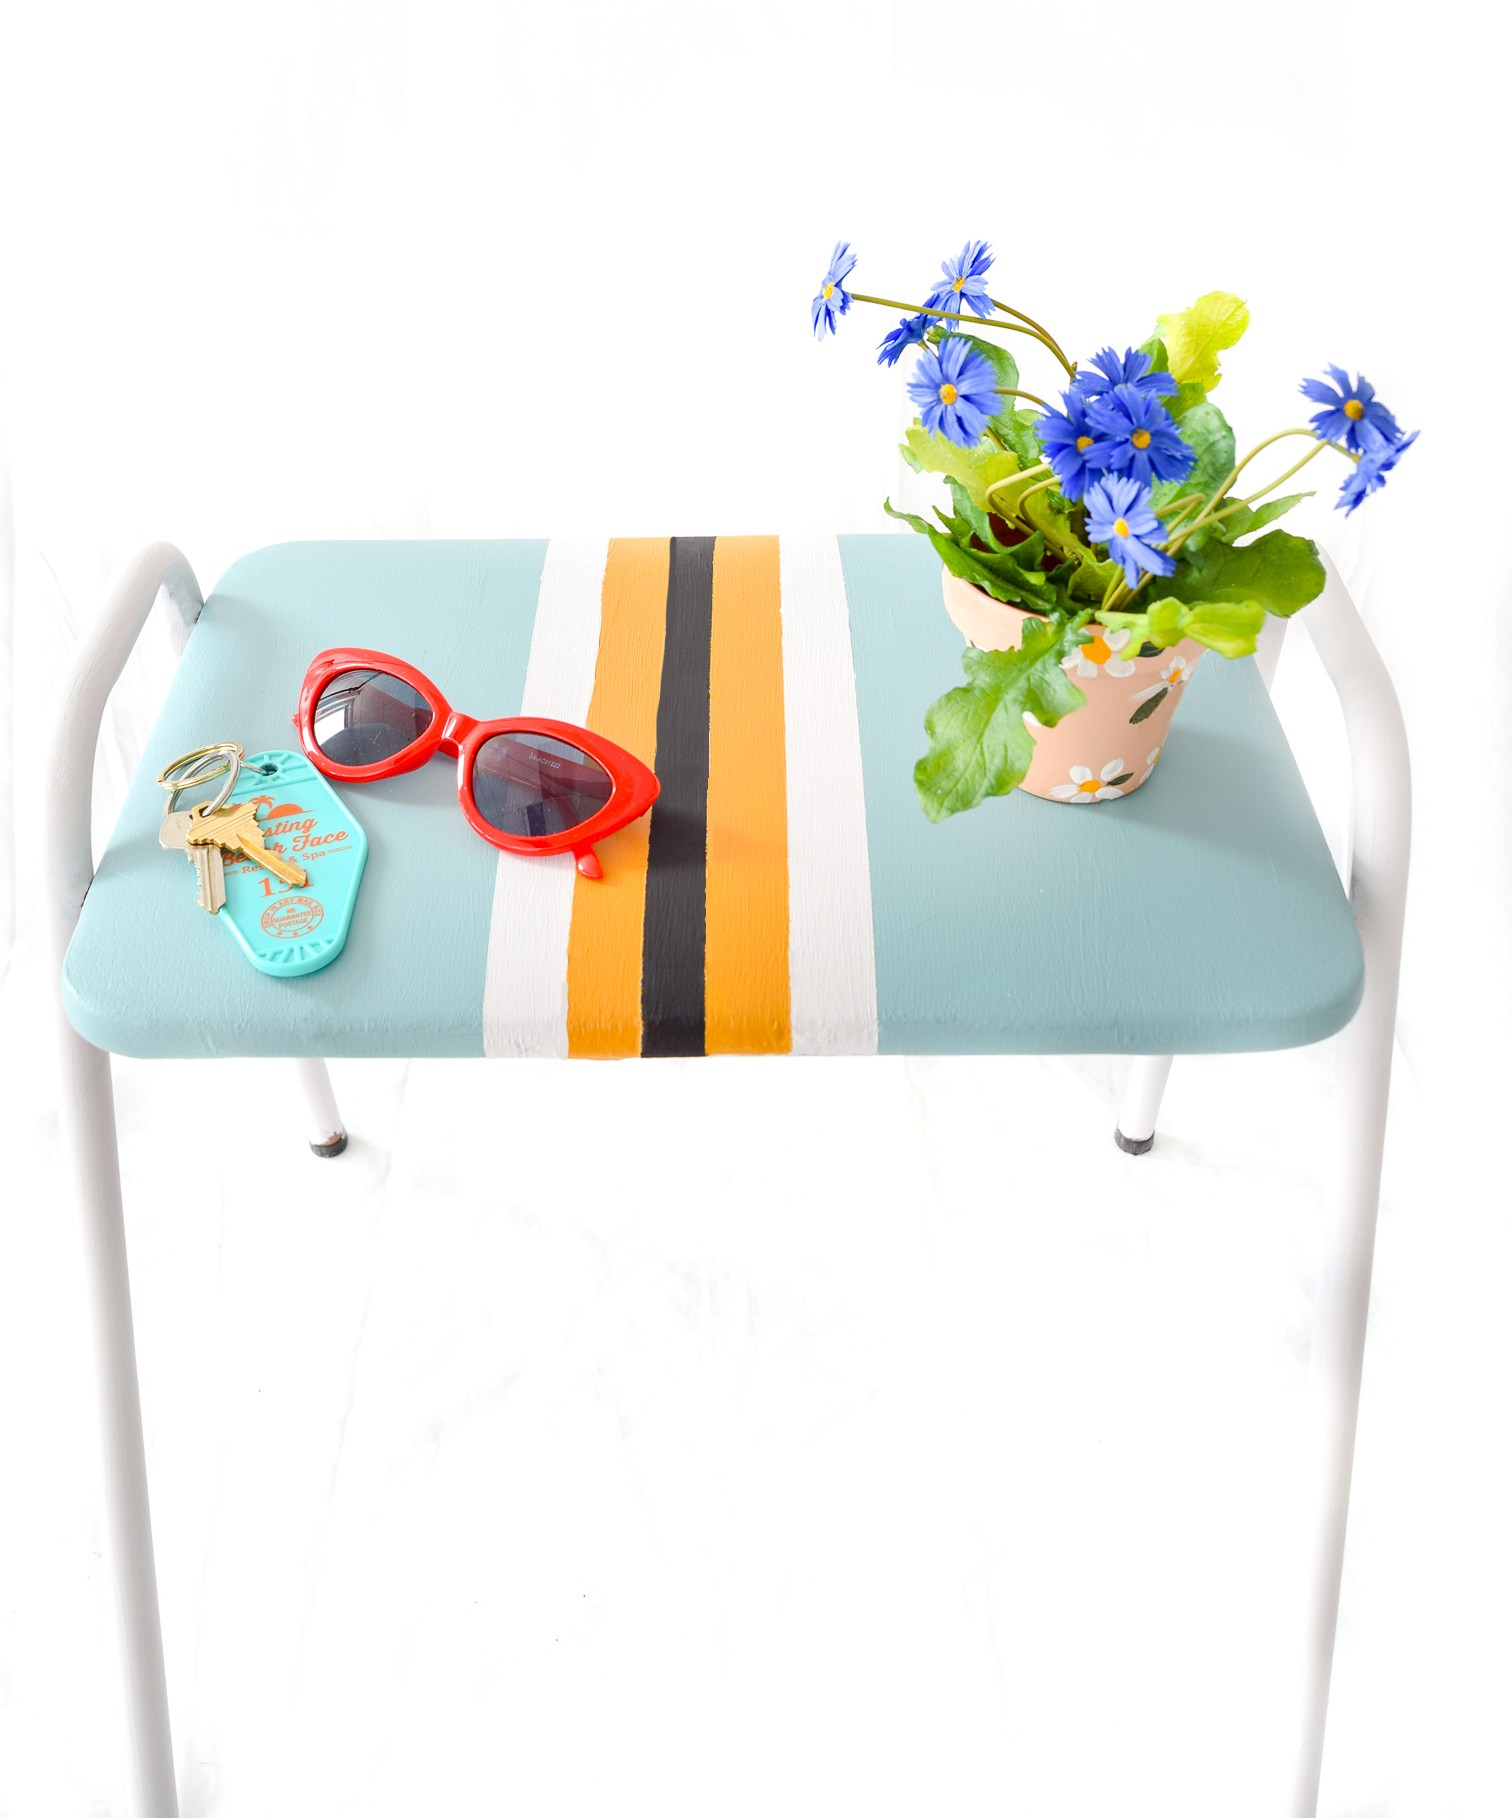 Blue and yellow stool with red glasses and plant on it